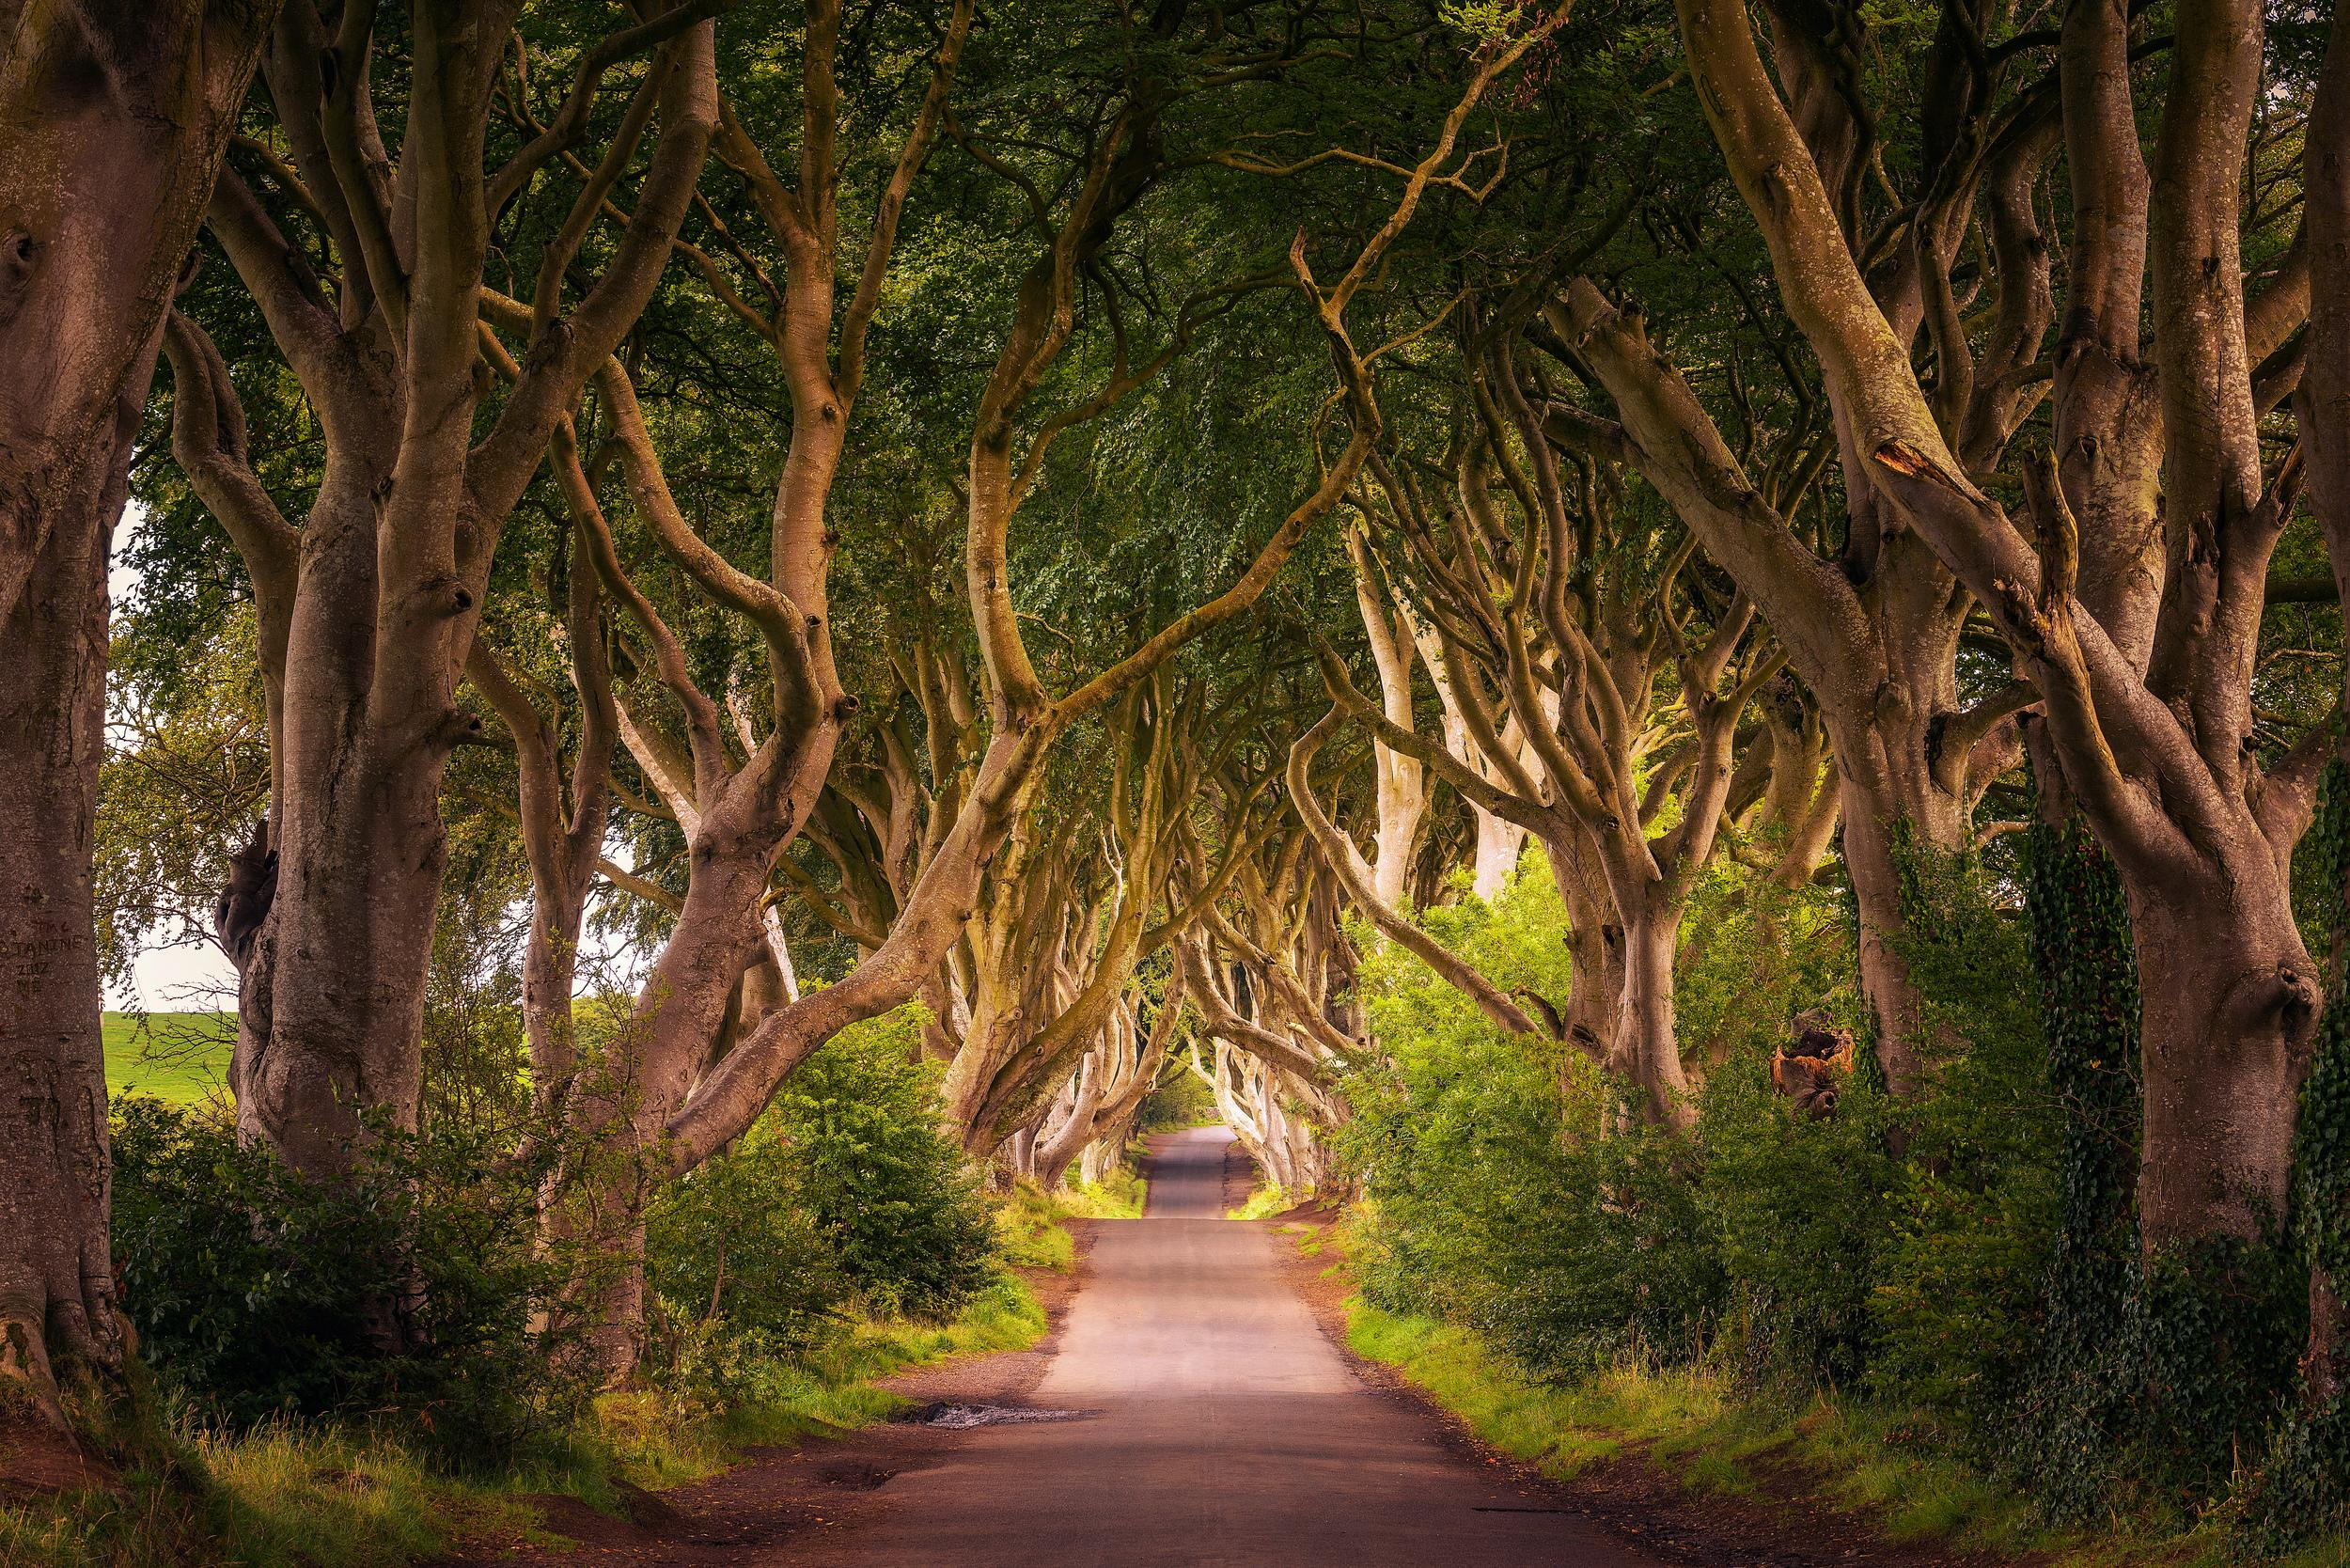 """<p><strong>GOT location</strong>: The road from King's Landing</p>  <p><strong>Real life location:</strong> Dark Hedges, Northern Ireland</p>  <p>Feel like you're riding with Brienne of Tarth and Podrick as youstroll along the Dark Hedges.</p>  <p><a href=""""https://fave.co/2ukOZ1O""""><strong>Book your trip.</strong></a></p>"""